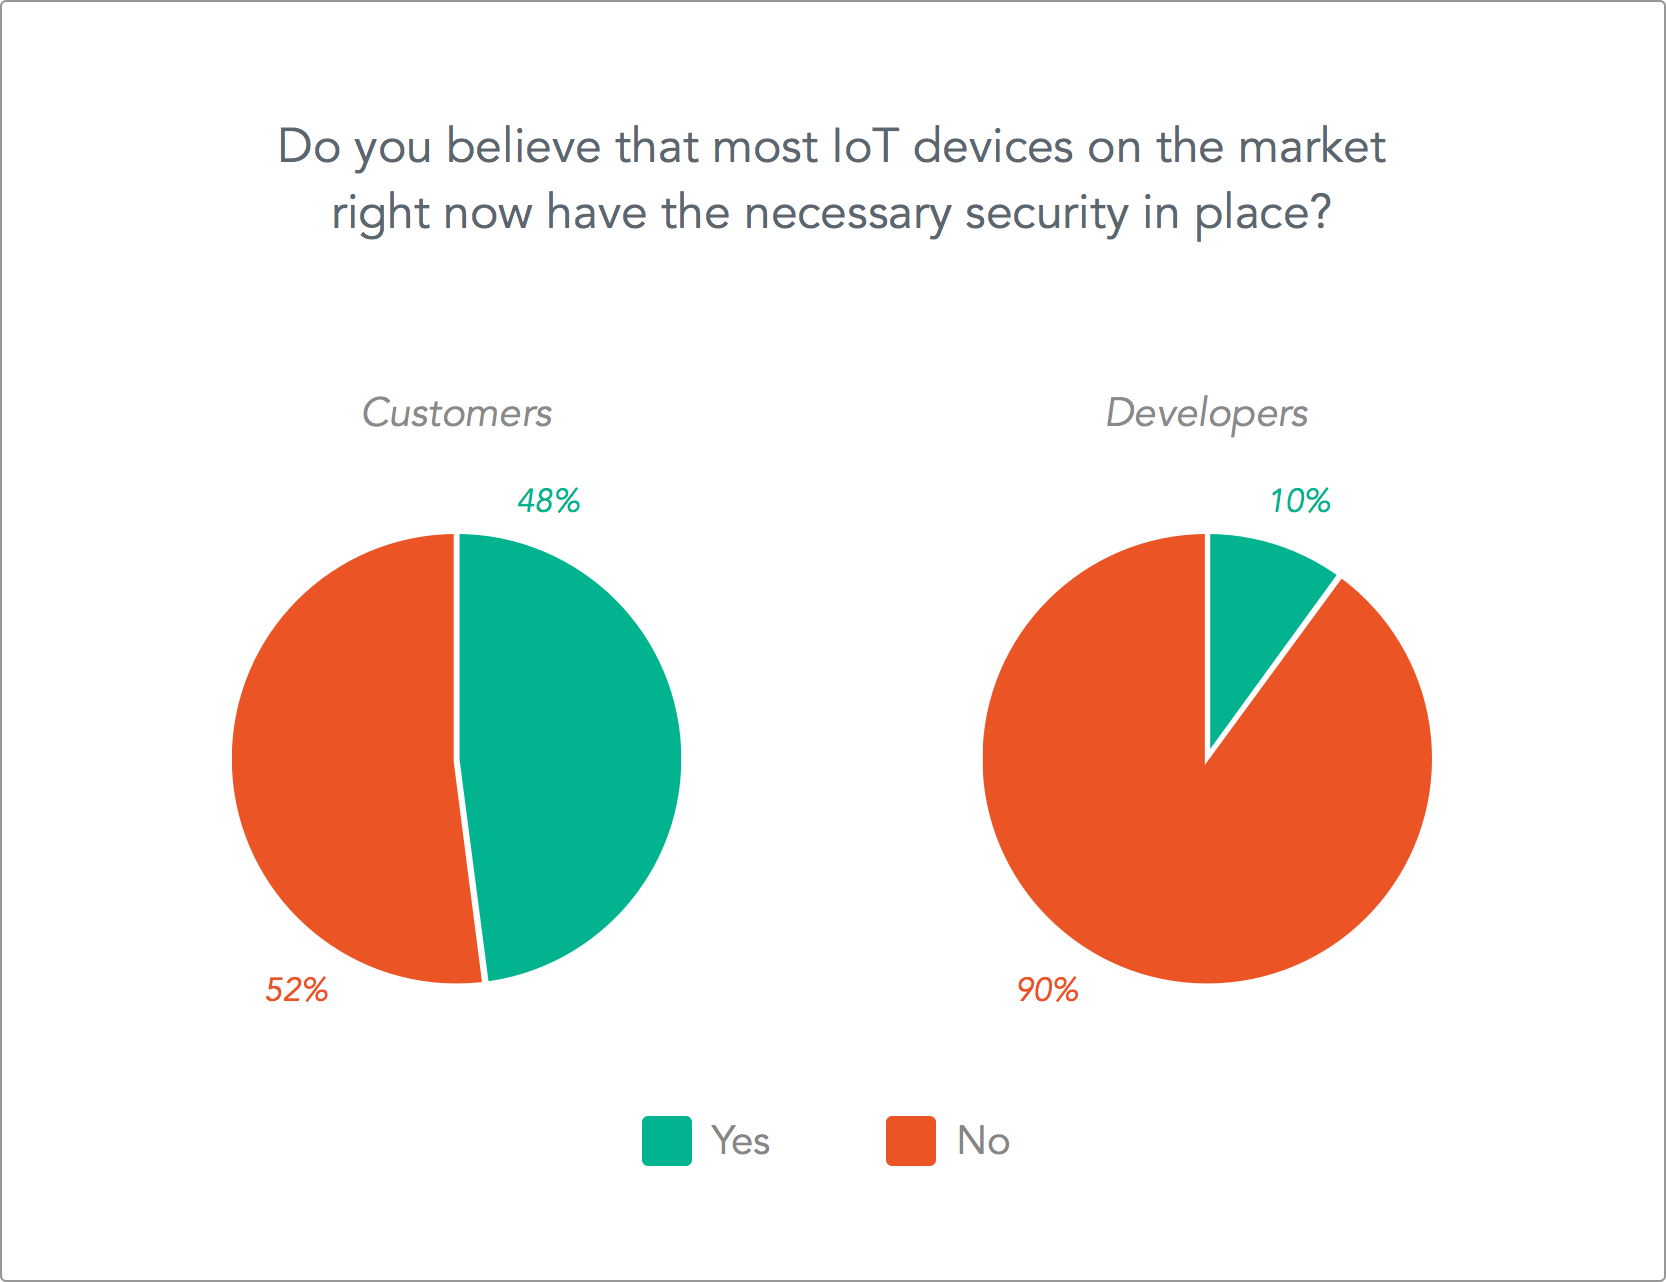 Do you believe IoT devices are secure